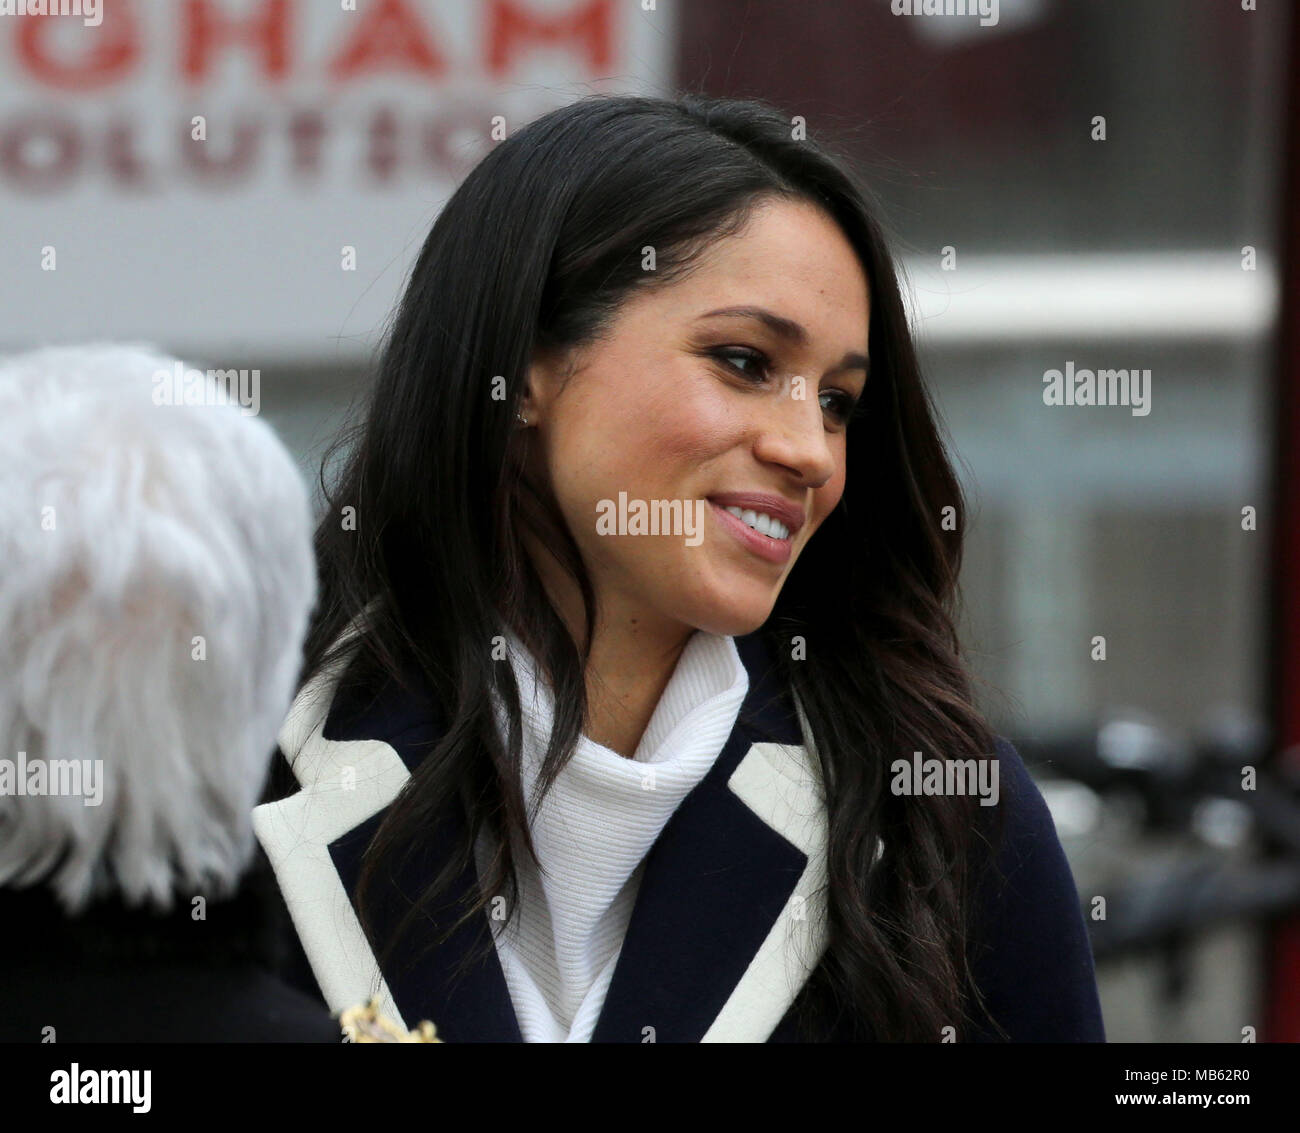 Meghan Markle Visit To Birmingham Stock Photos & Meghan